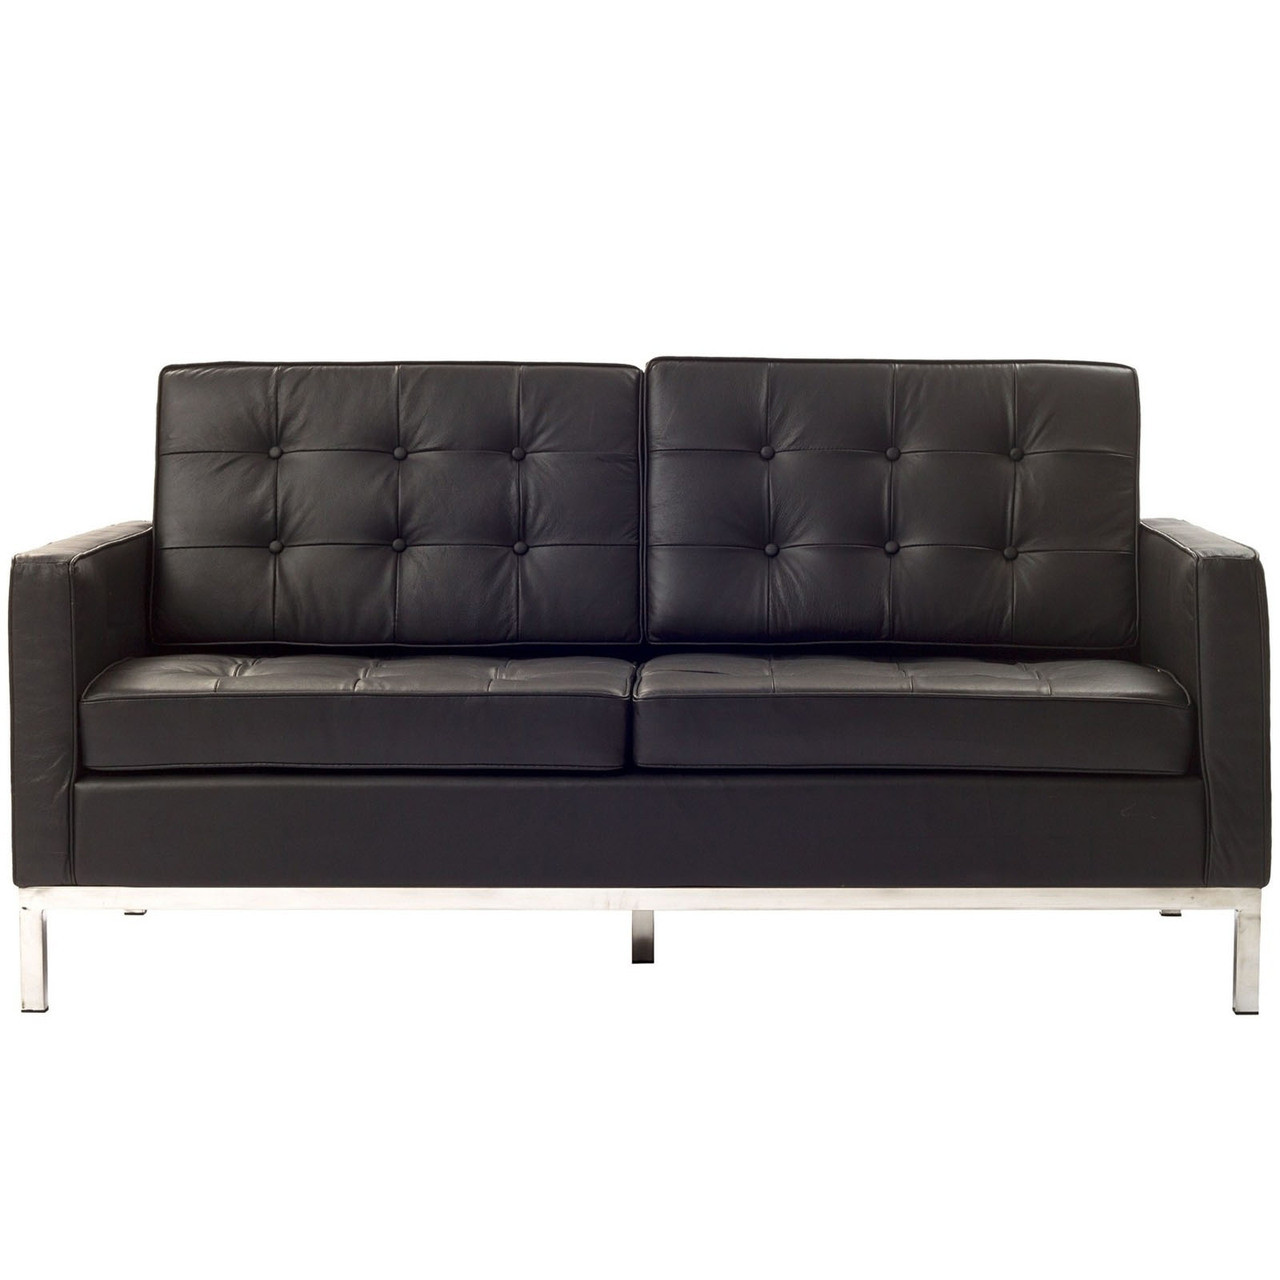 florence style leather loft loveseat  zin home - tan leather · black leather · white leather · brown leather